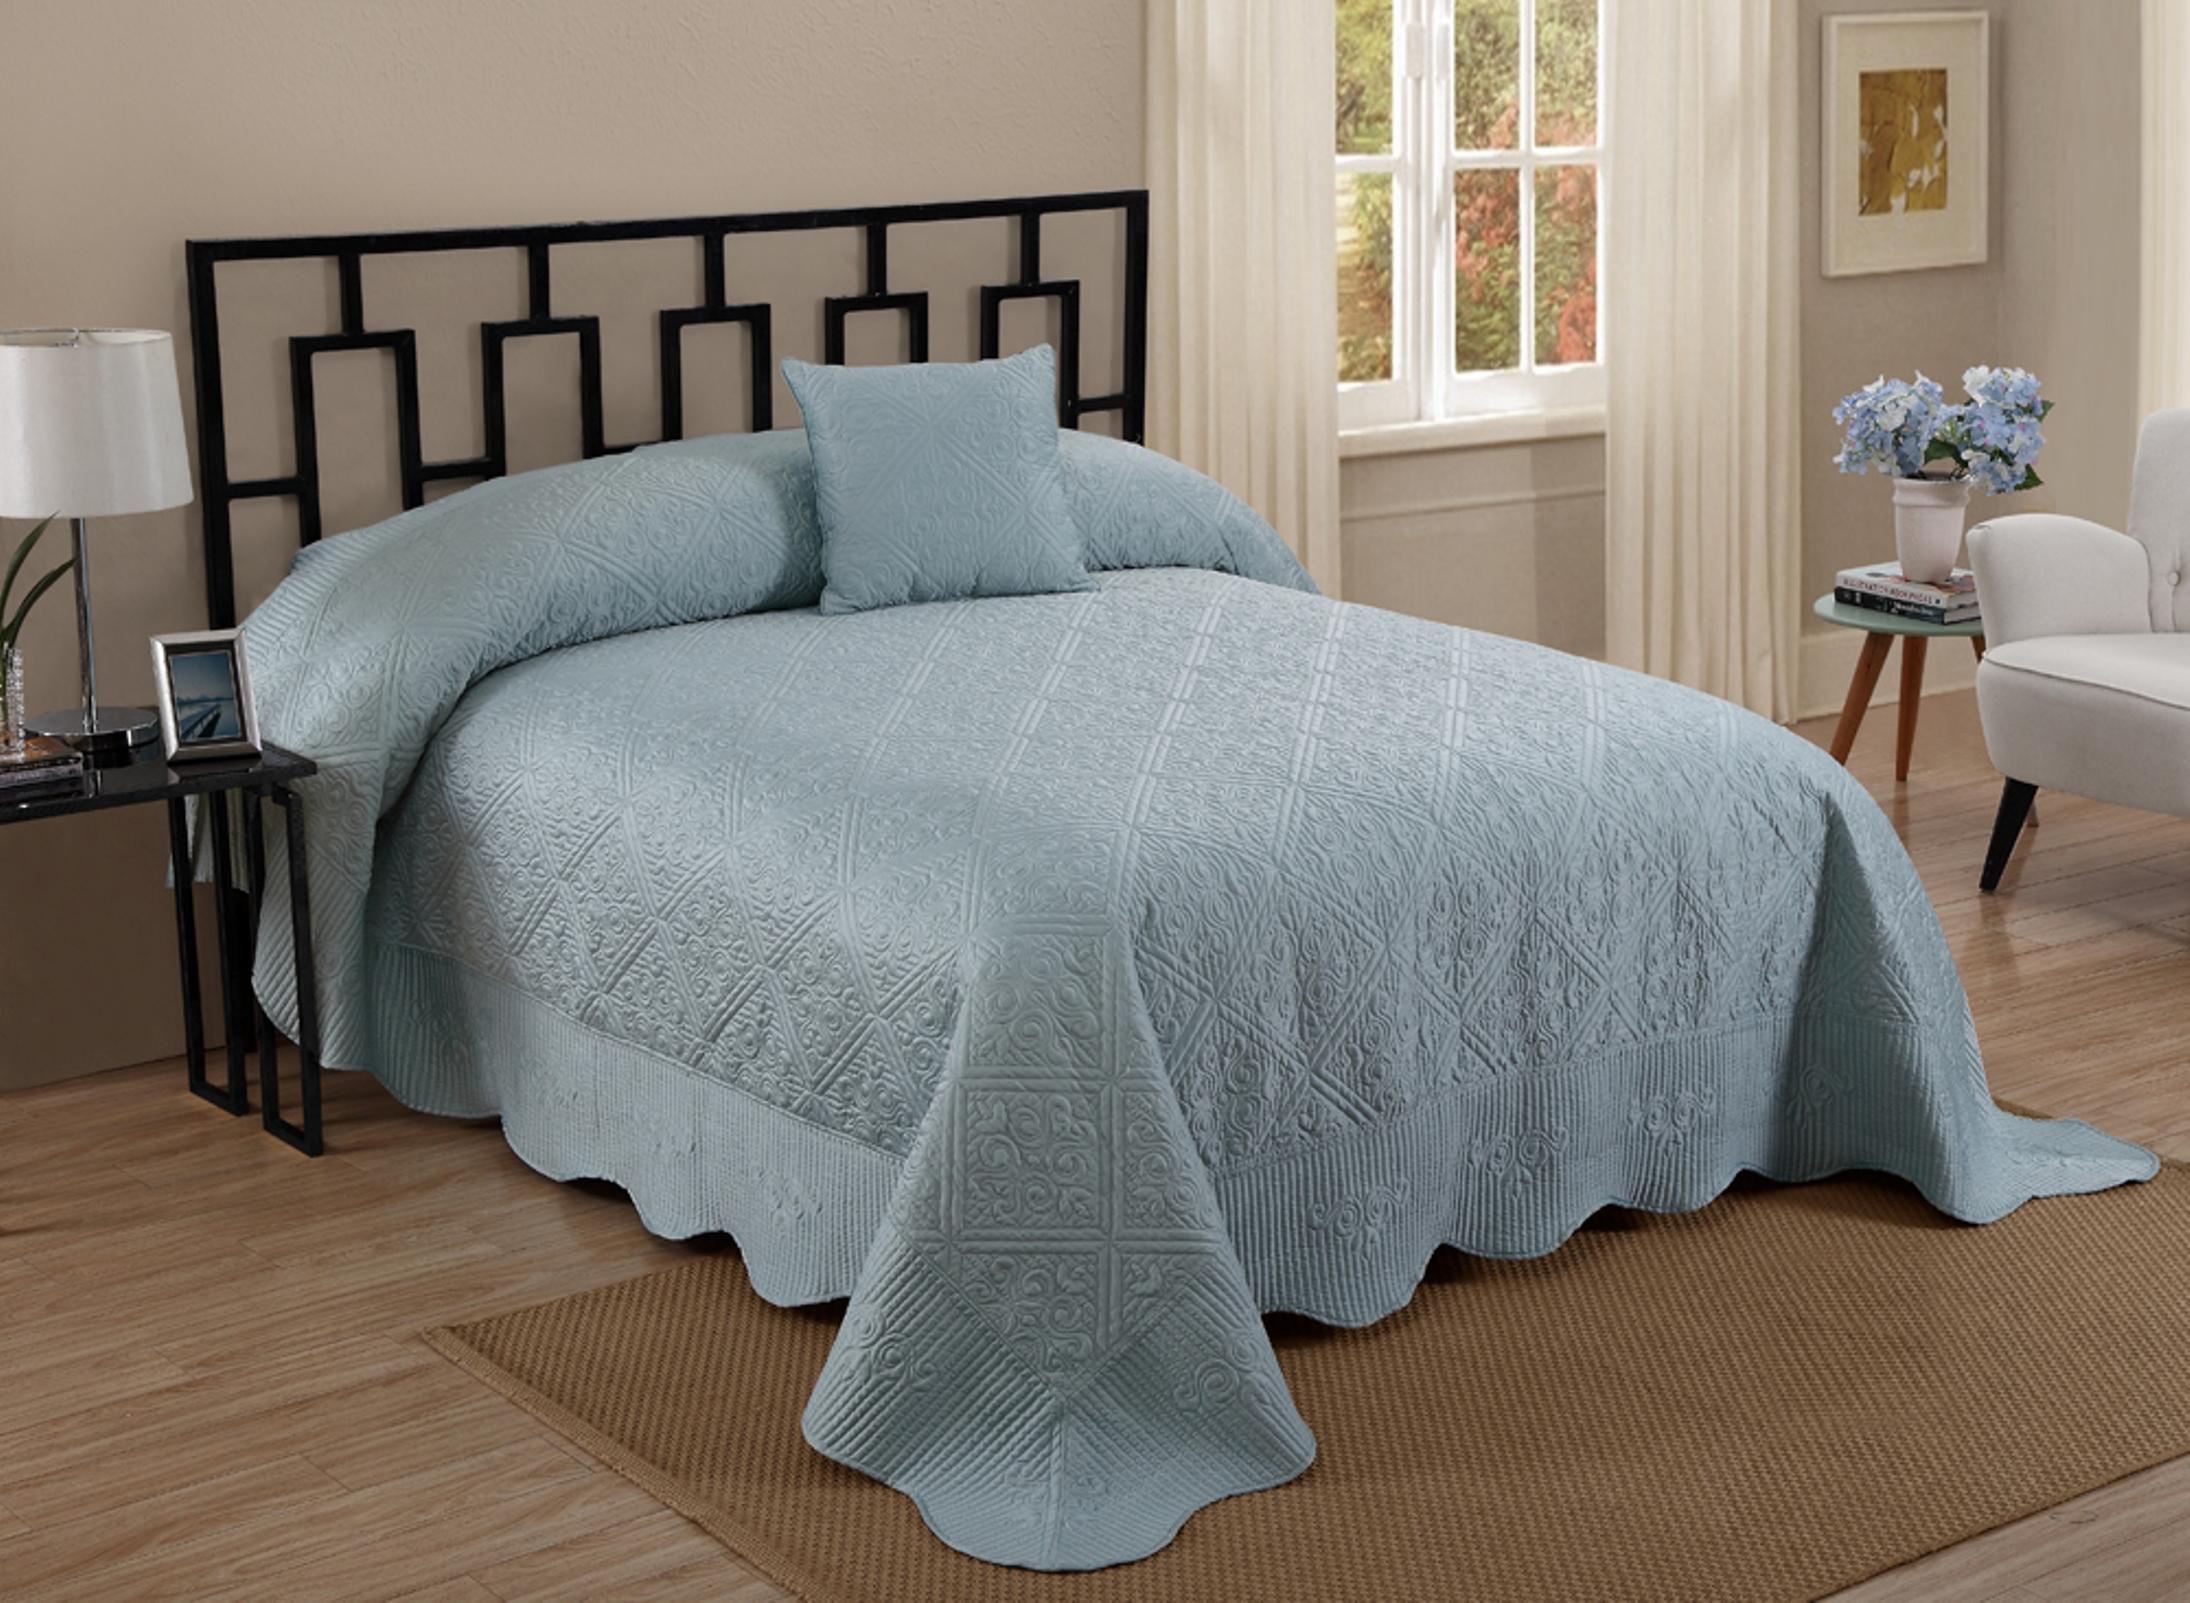 bedroom comforter set sale bedspreads and bedspread nice large king colorful grey queen design colored mint decorative gray sheets teal for dog green sets aqua purple comforters of cute bedding size turquoise twin teenagers red coral